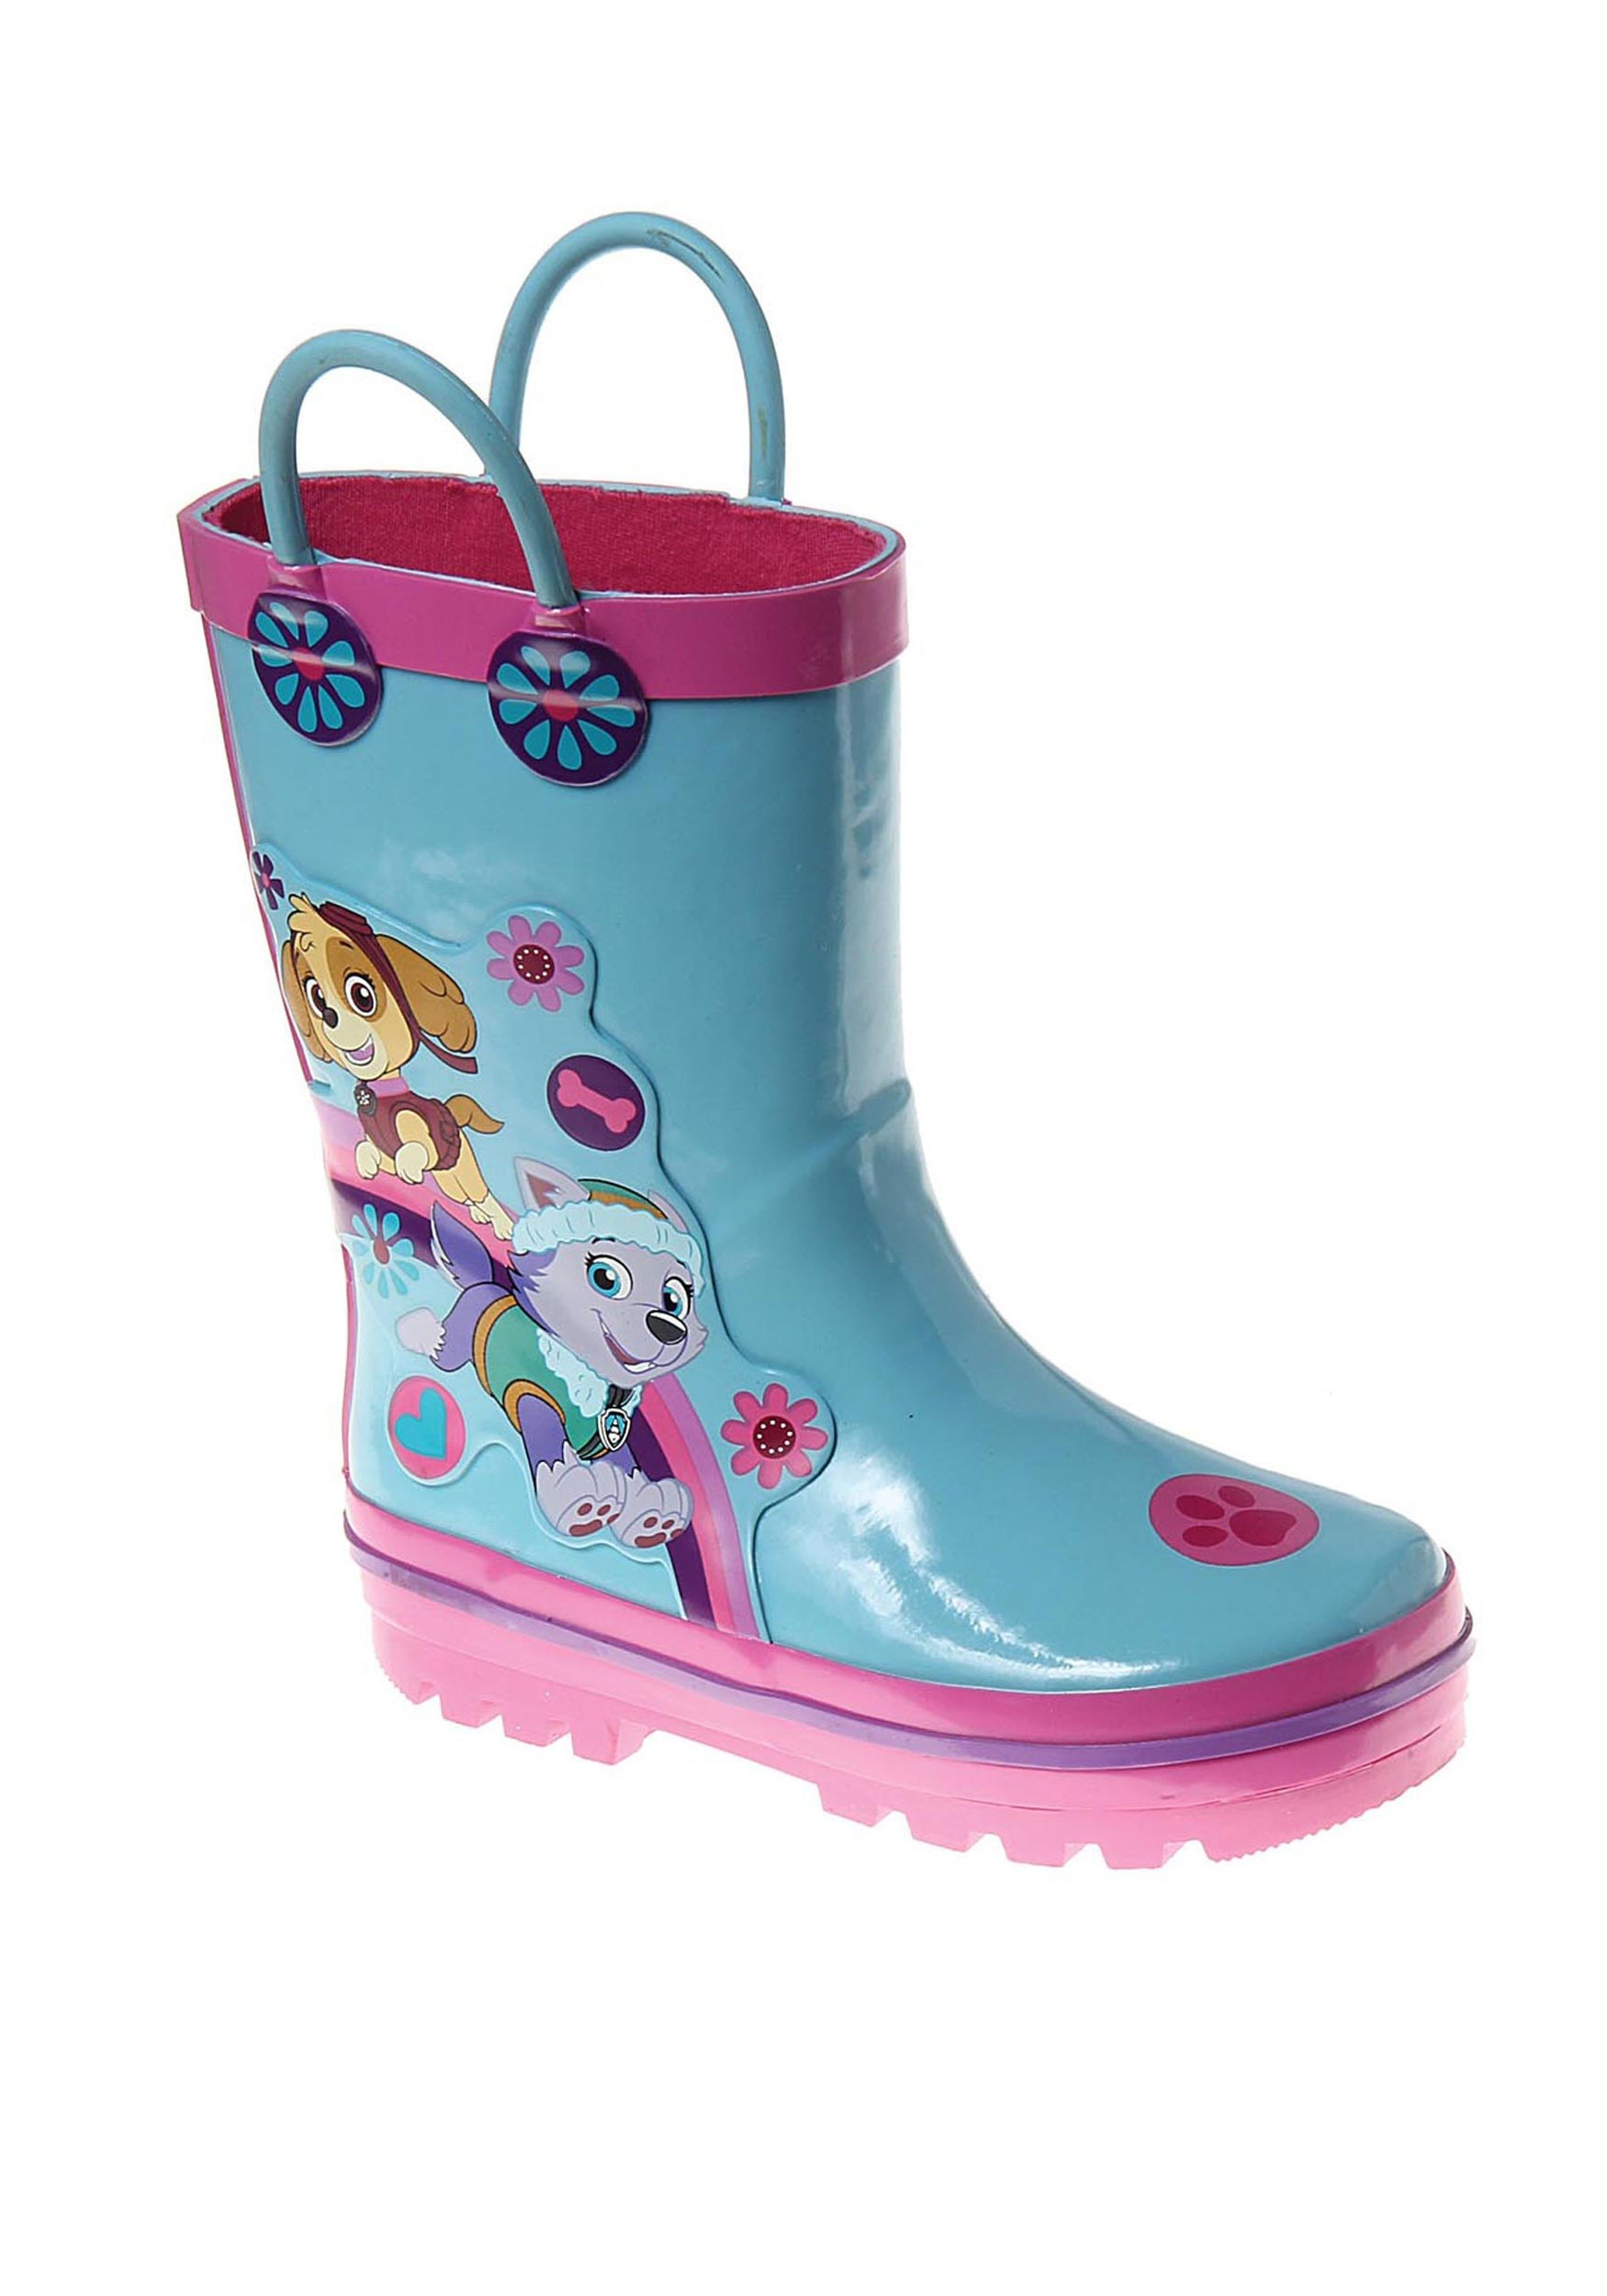 Paw Patrol Skye And Everest Rain Boots For Girls-5440